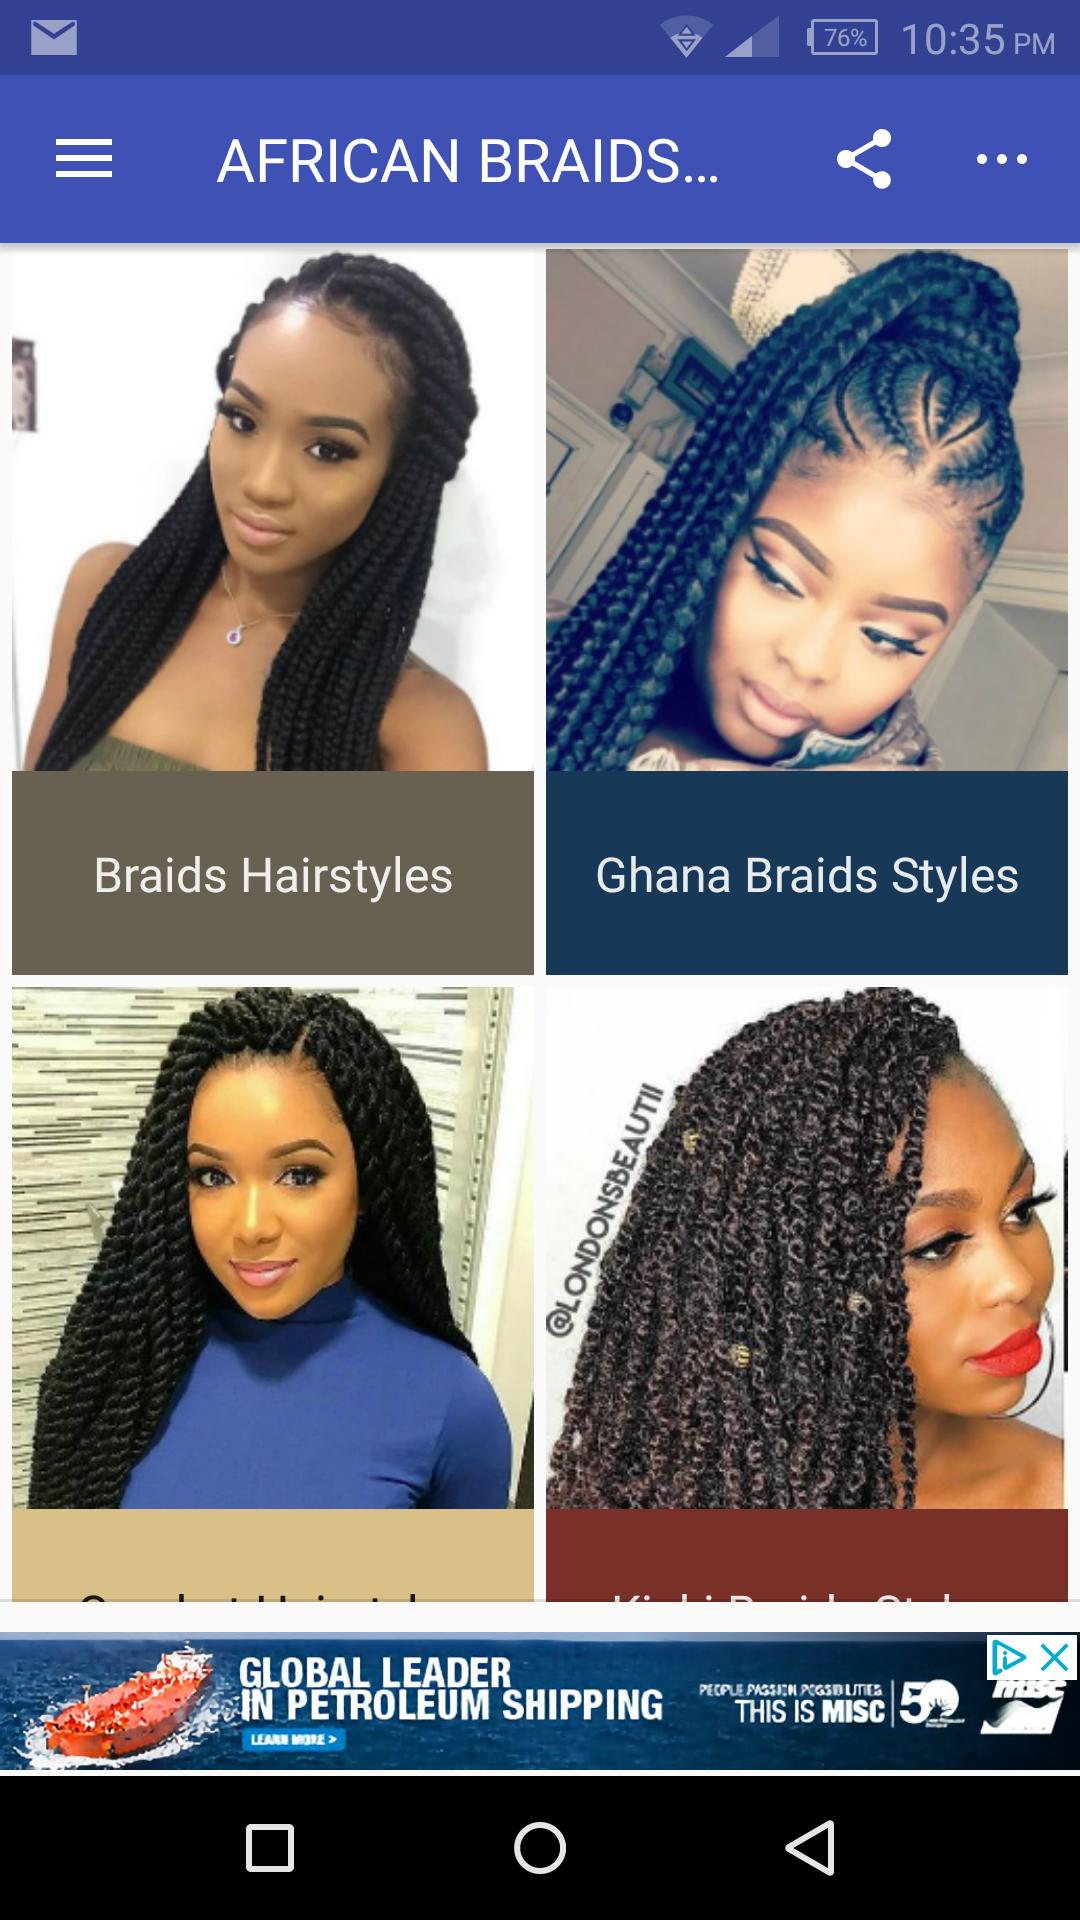 African Braids Hairstyles 50 for Android   APK Download